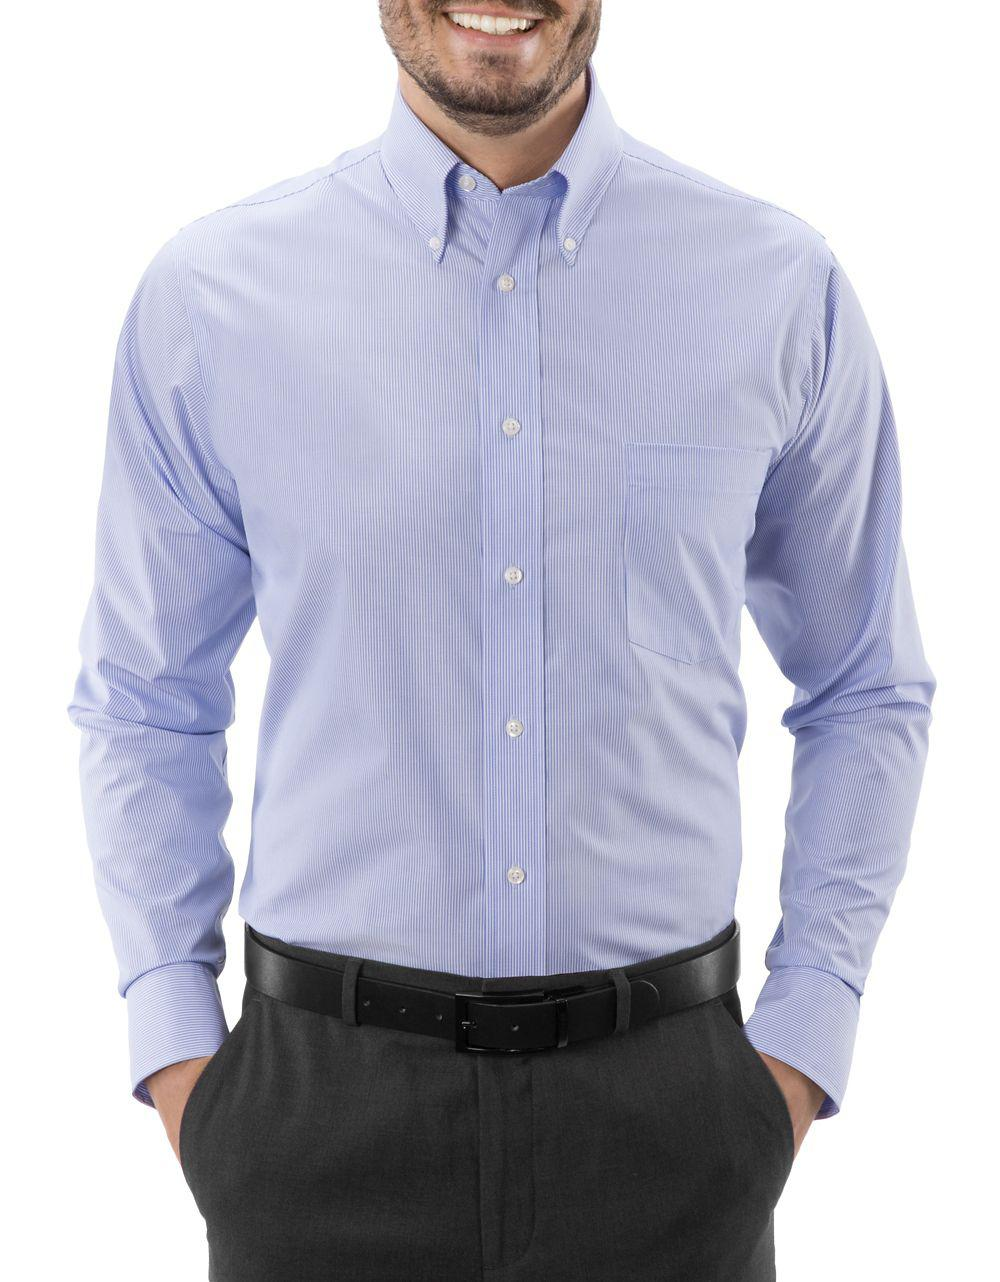 Tommy Hilfiger Non Iron Slim Fit Solid Dress Shirt